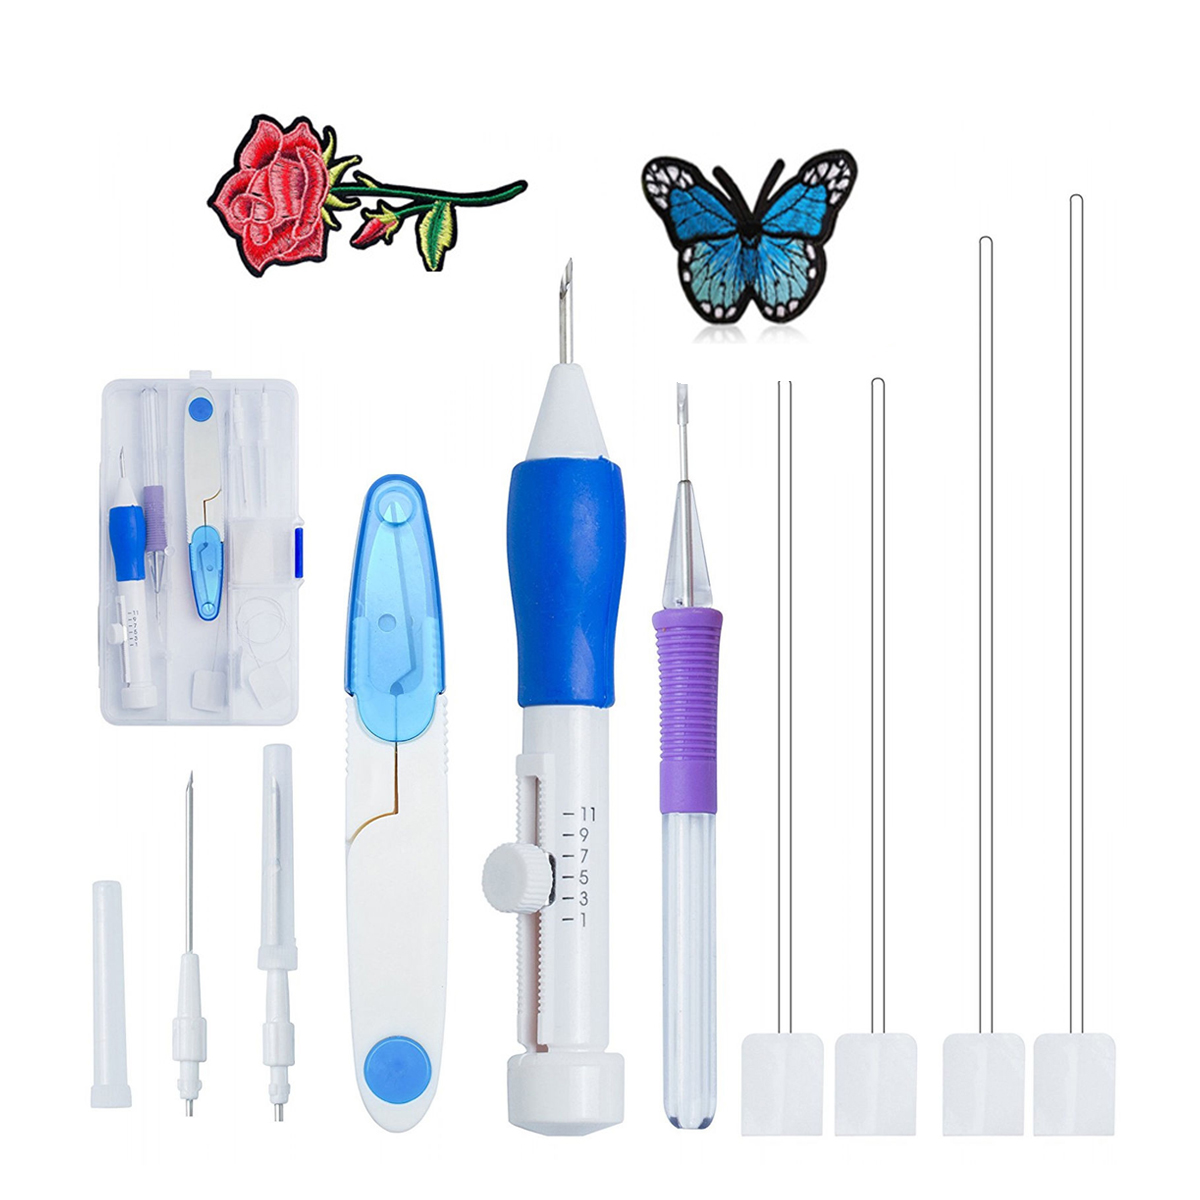 Magic Embroidery Pen Set,Euow Punch Needle Pen Set Craft Tool-ABS Plastic Punch Needles DIY Craft for Embroidery Threaders Sewing